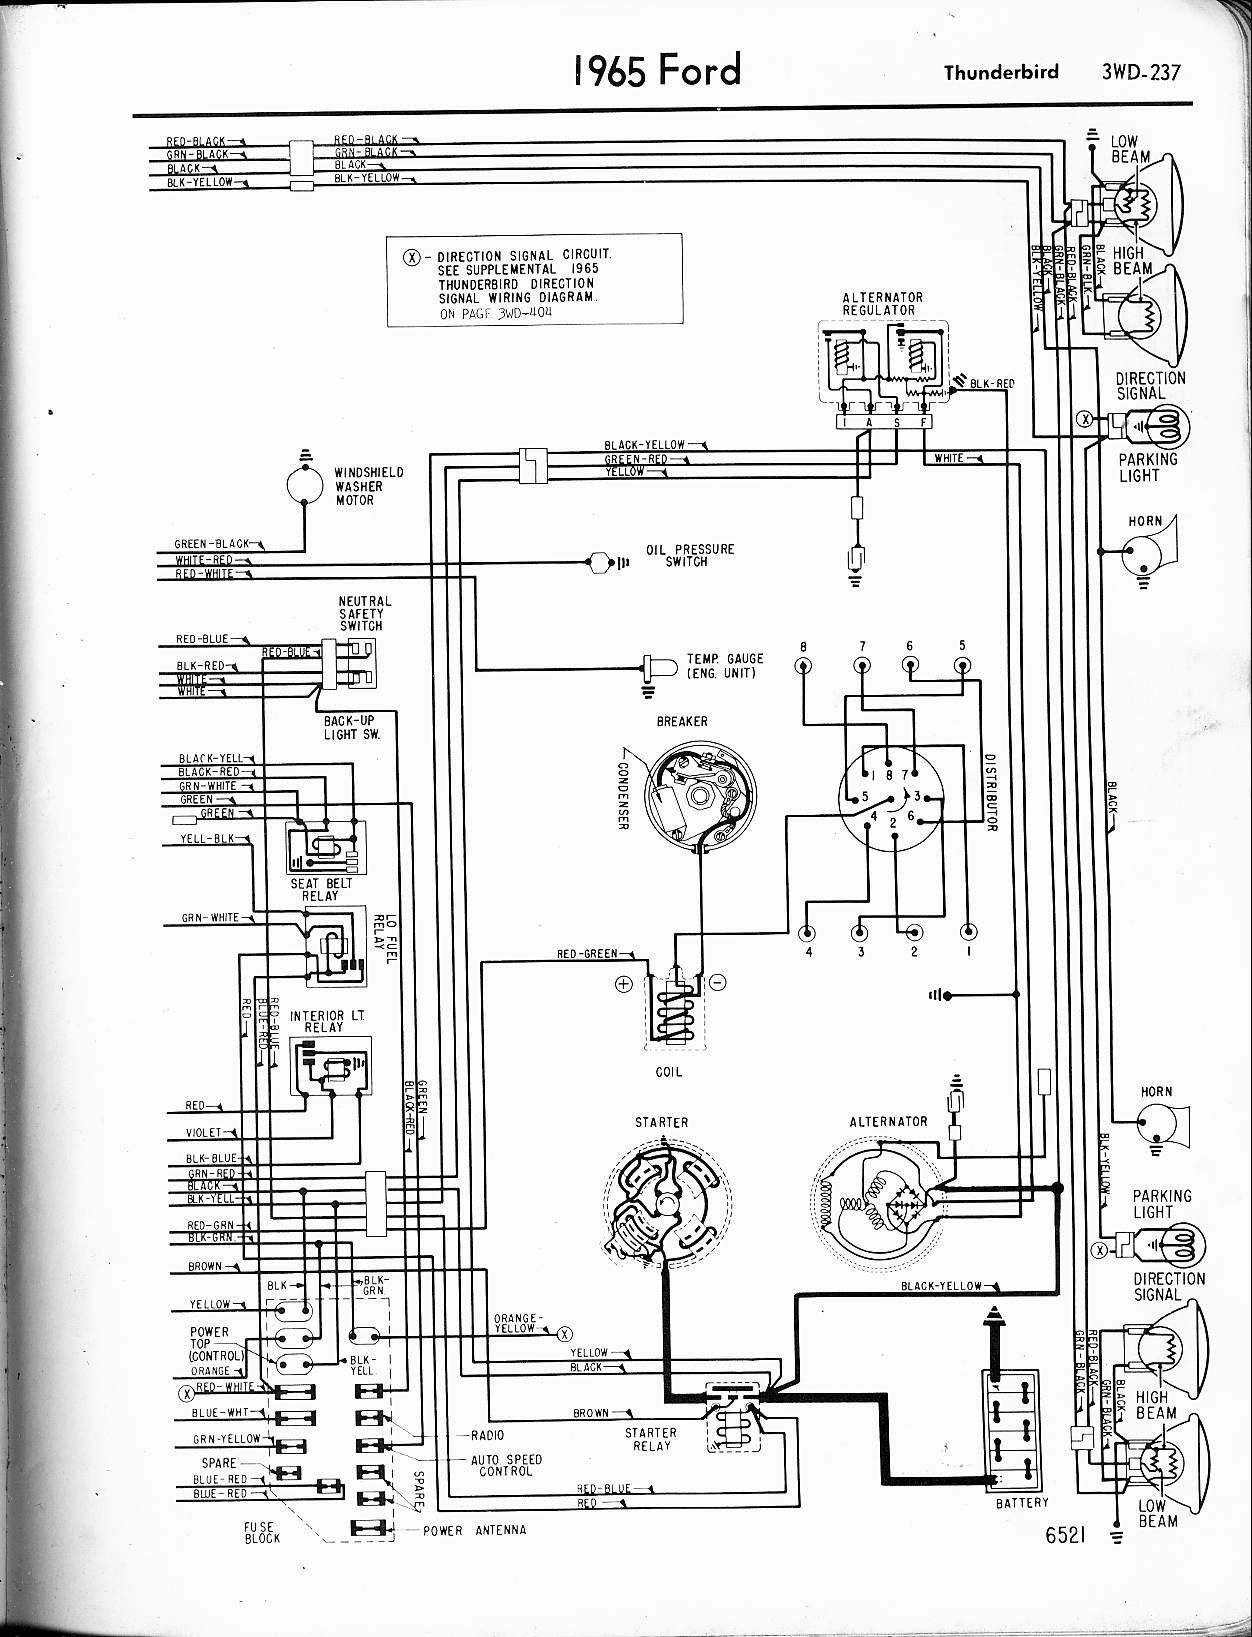 hight resolution of new need wiring diagram diagram wiringdiagram diagramming diagramm visuals visualisation graphical